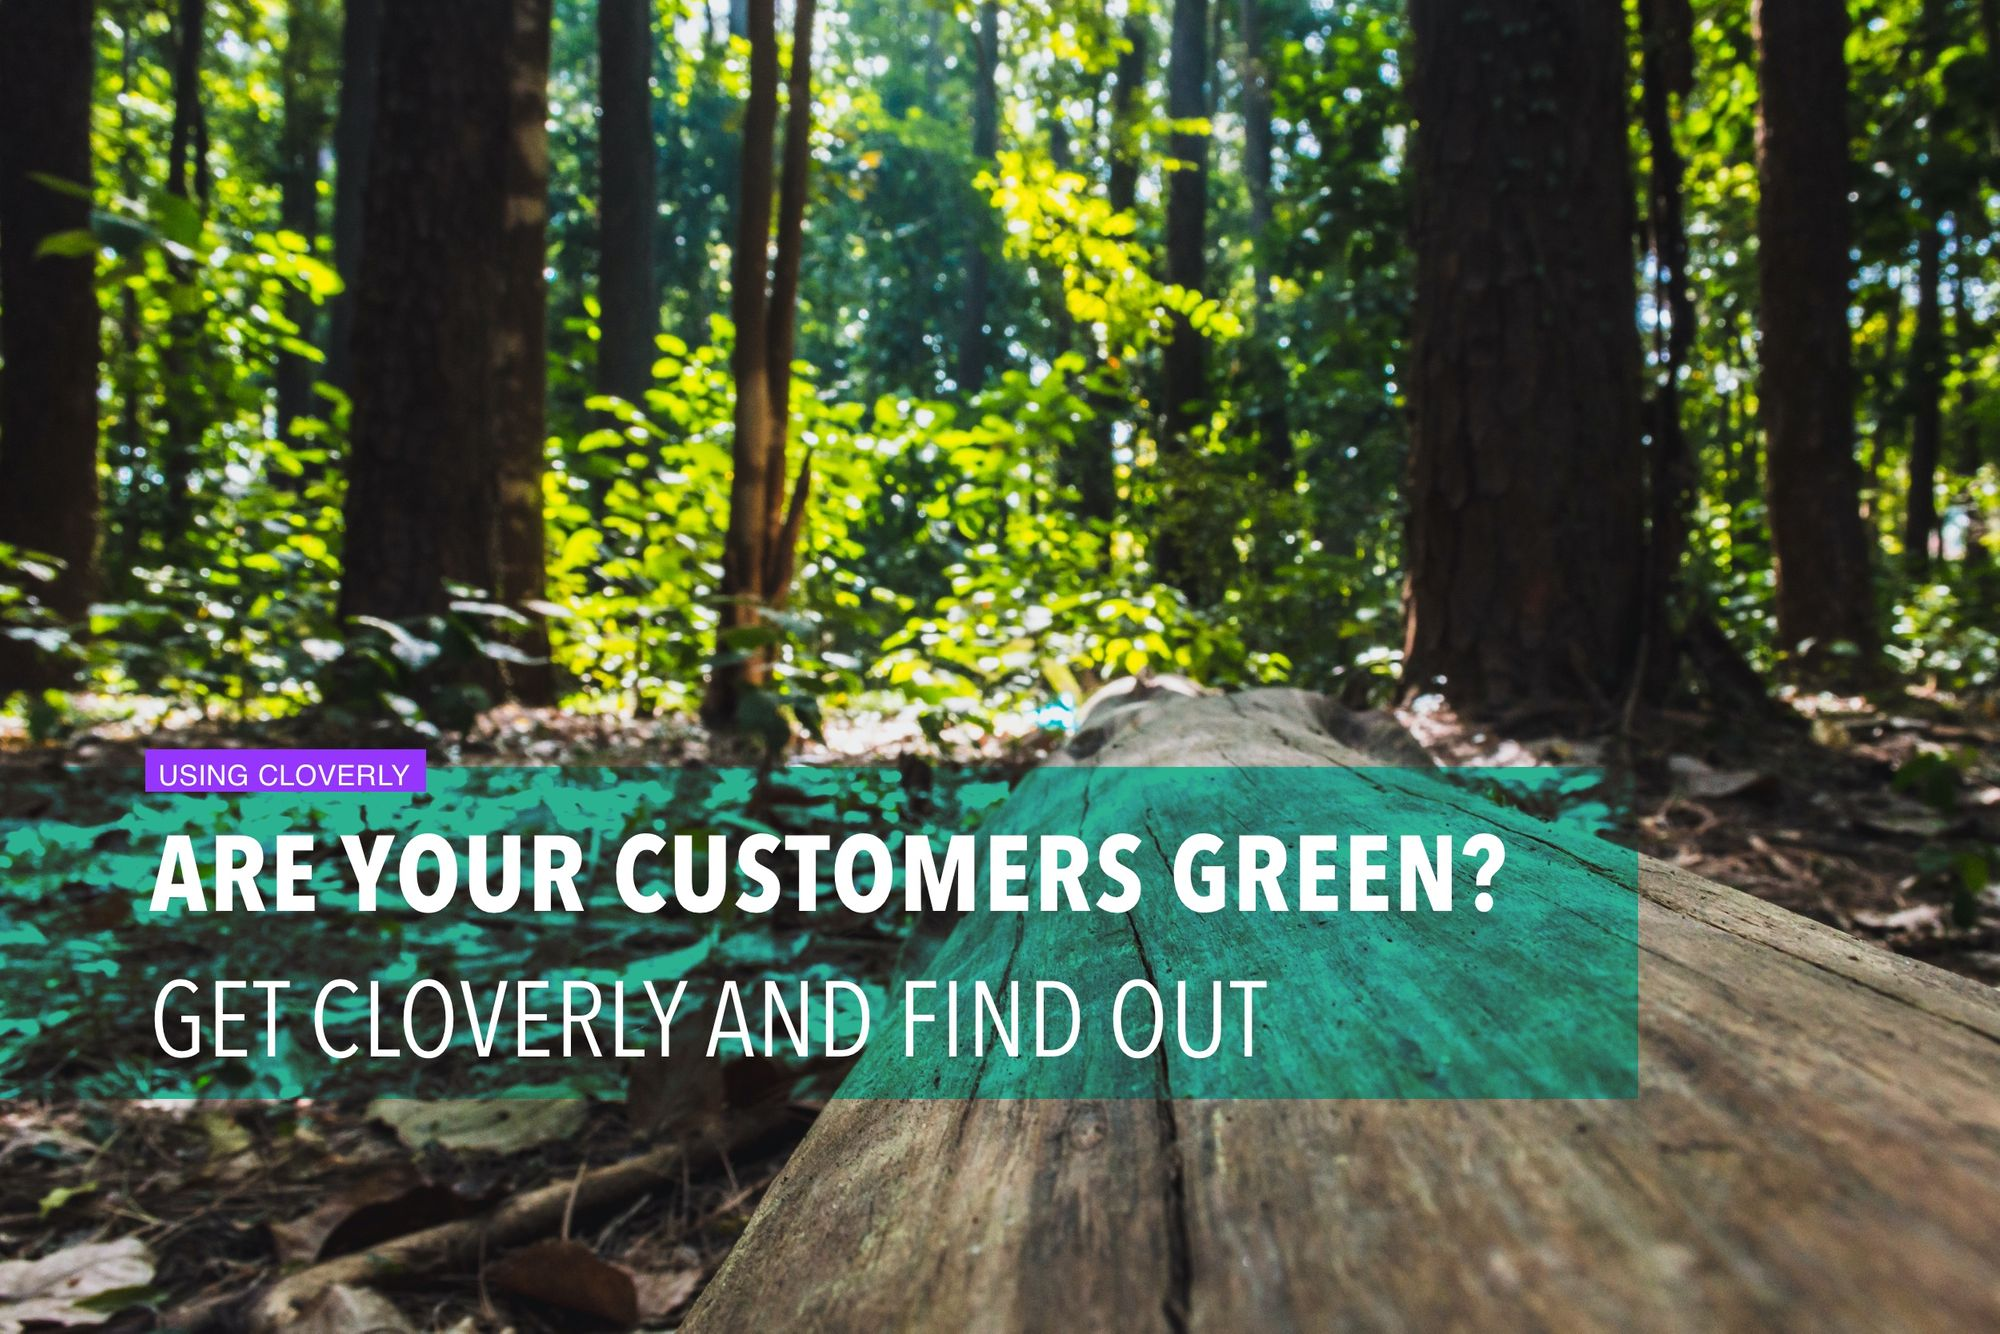 Are your customers green? Get Cloverly and find out